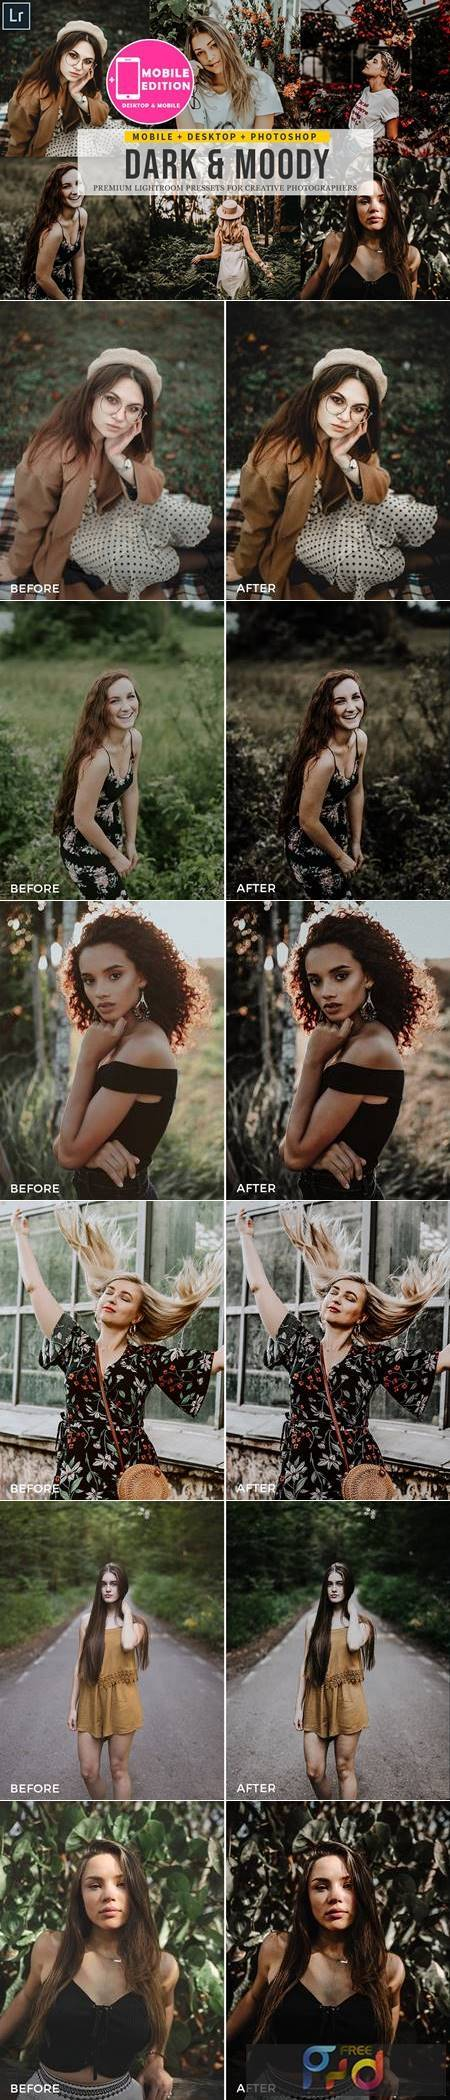 Dark and Moody Lightroom Presets 4842930 1